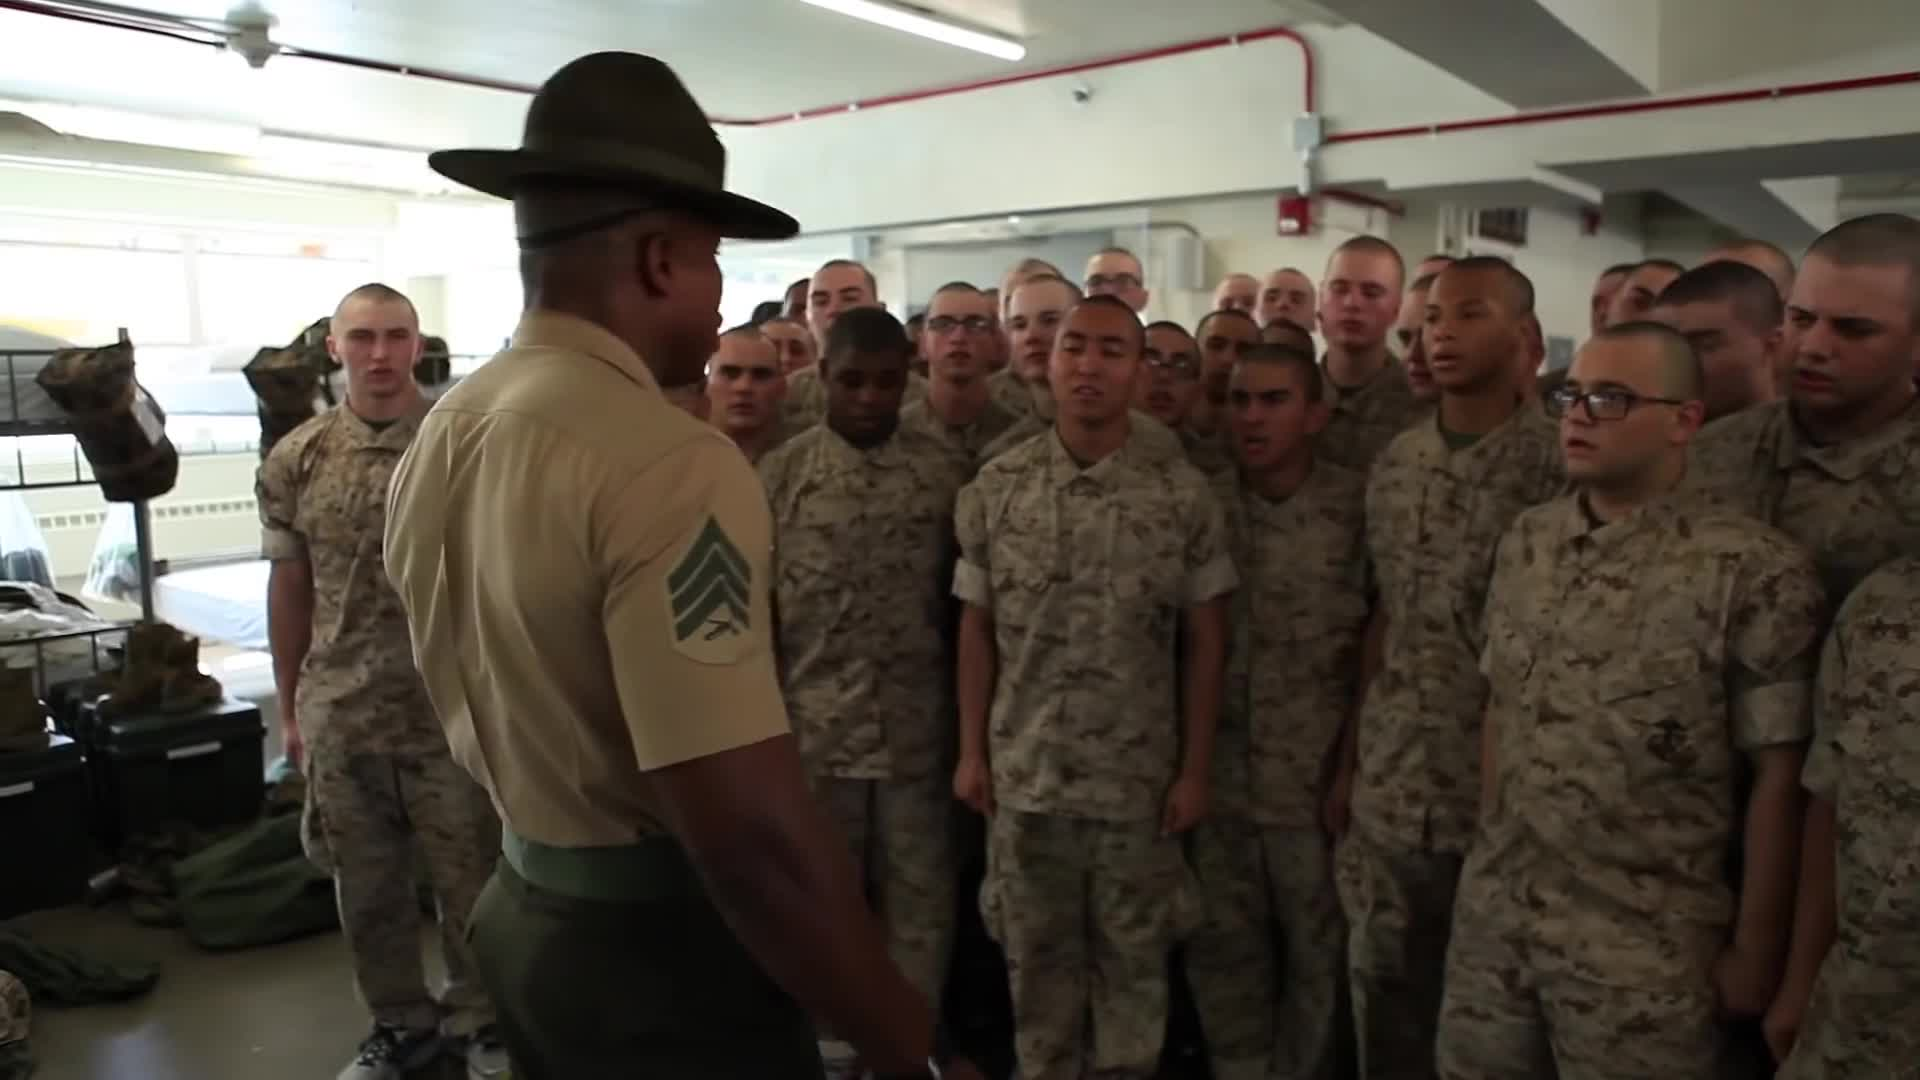 aiirsource military, armed forces, basic training, boot camp, boot camp training, drill instructors, marine corps, marines, military, military exercise, military training, military videos, people & blogs, recruits, us military, usmc, yelling, When you want to be the funny guy at boot camp. GIFs